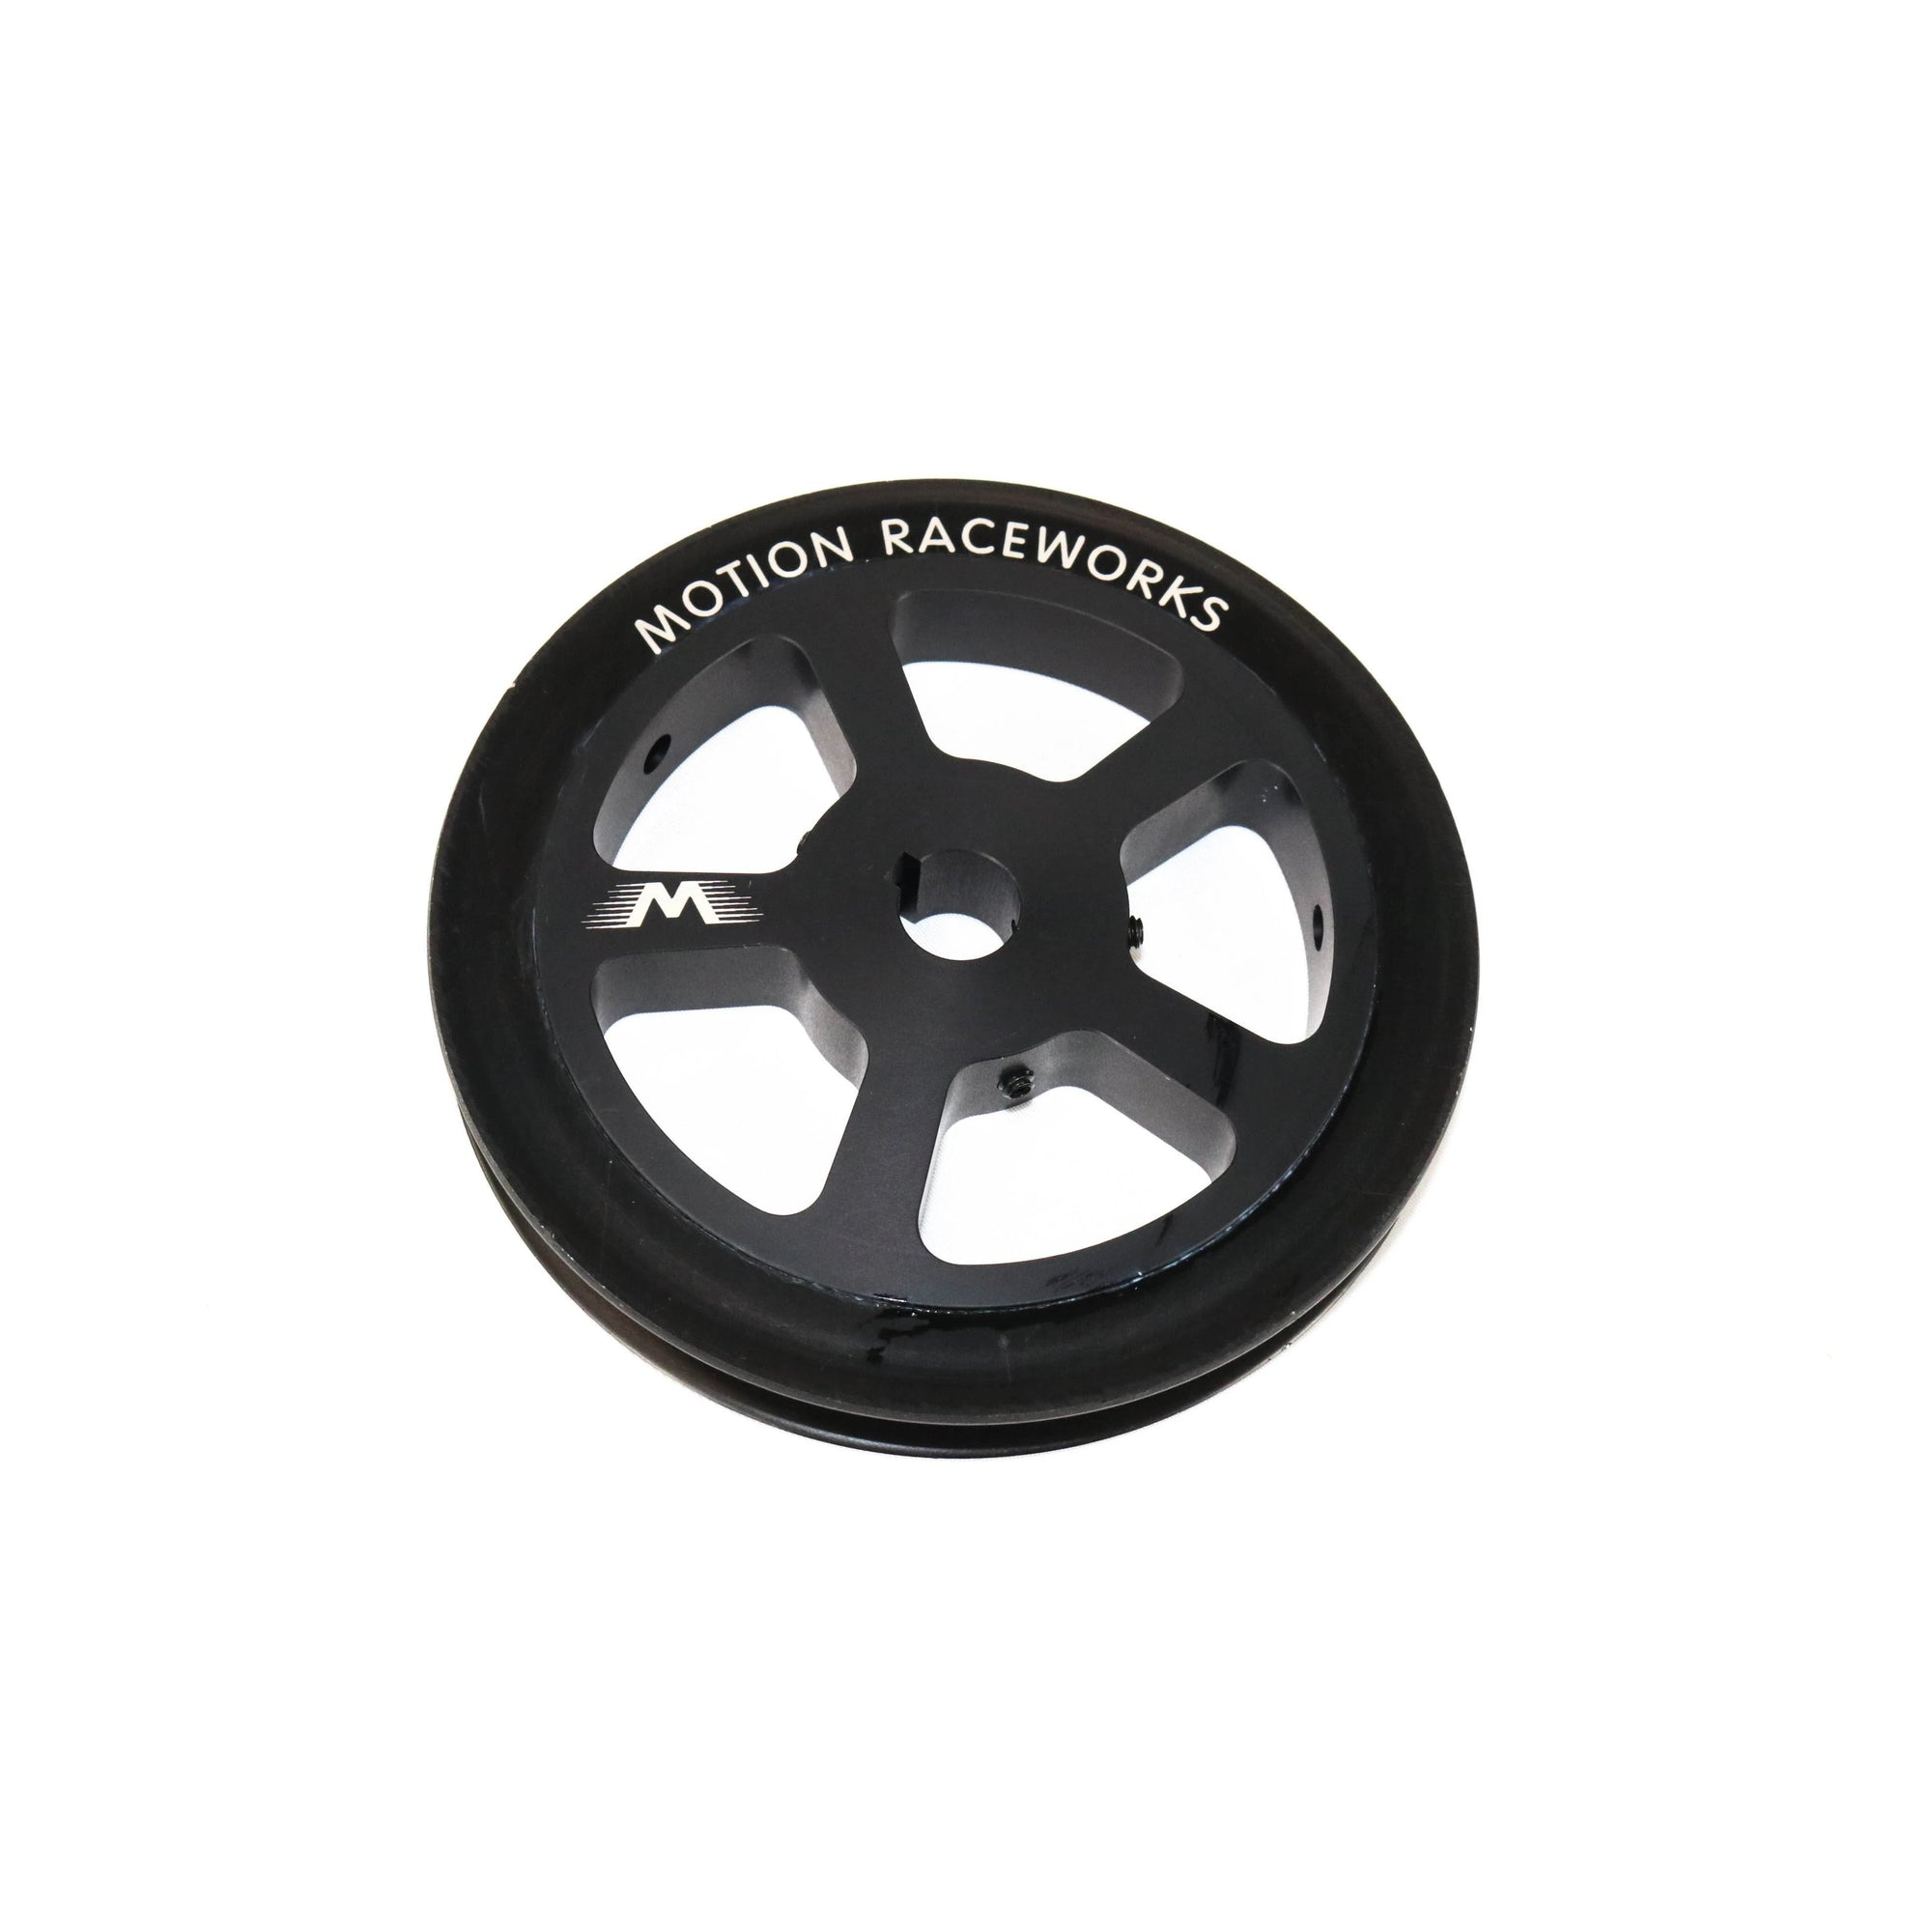 Motion Raceworks 50 tooth 8mm HTD Pulley for 5/8 keyed shaft-Motion Raceworks-Motion Raceworks